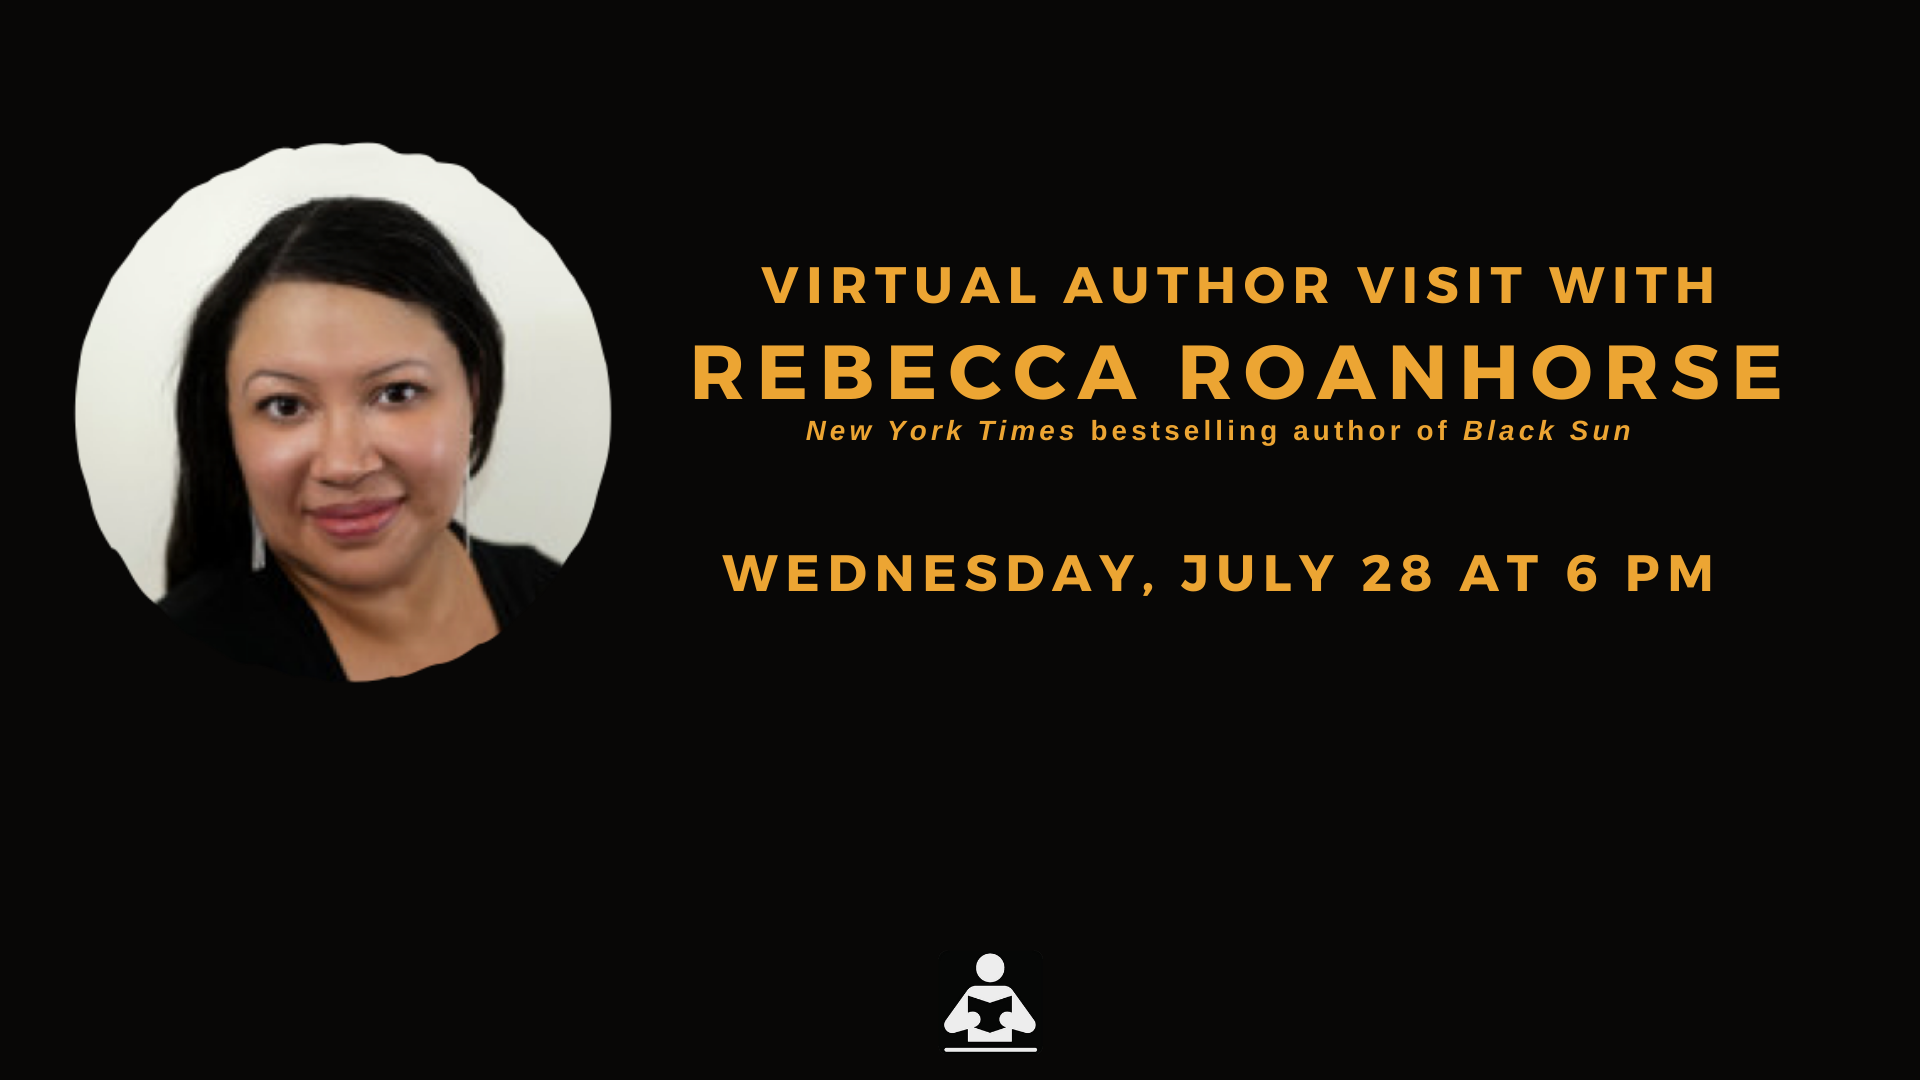 Banner with text: Virtual Author Visit with Rebecca Roanhorse, New York Times bestselling author of Black Sun. Wednesday, July 28 at 6 pm.